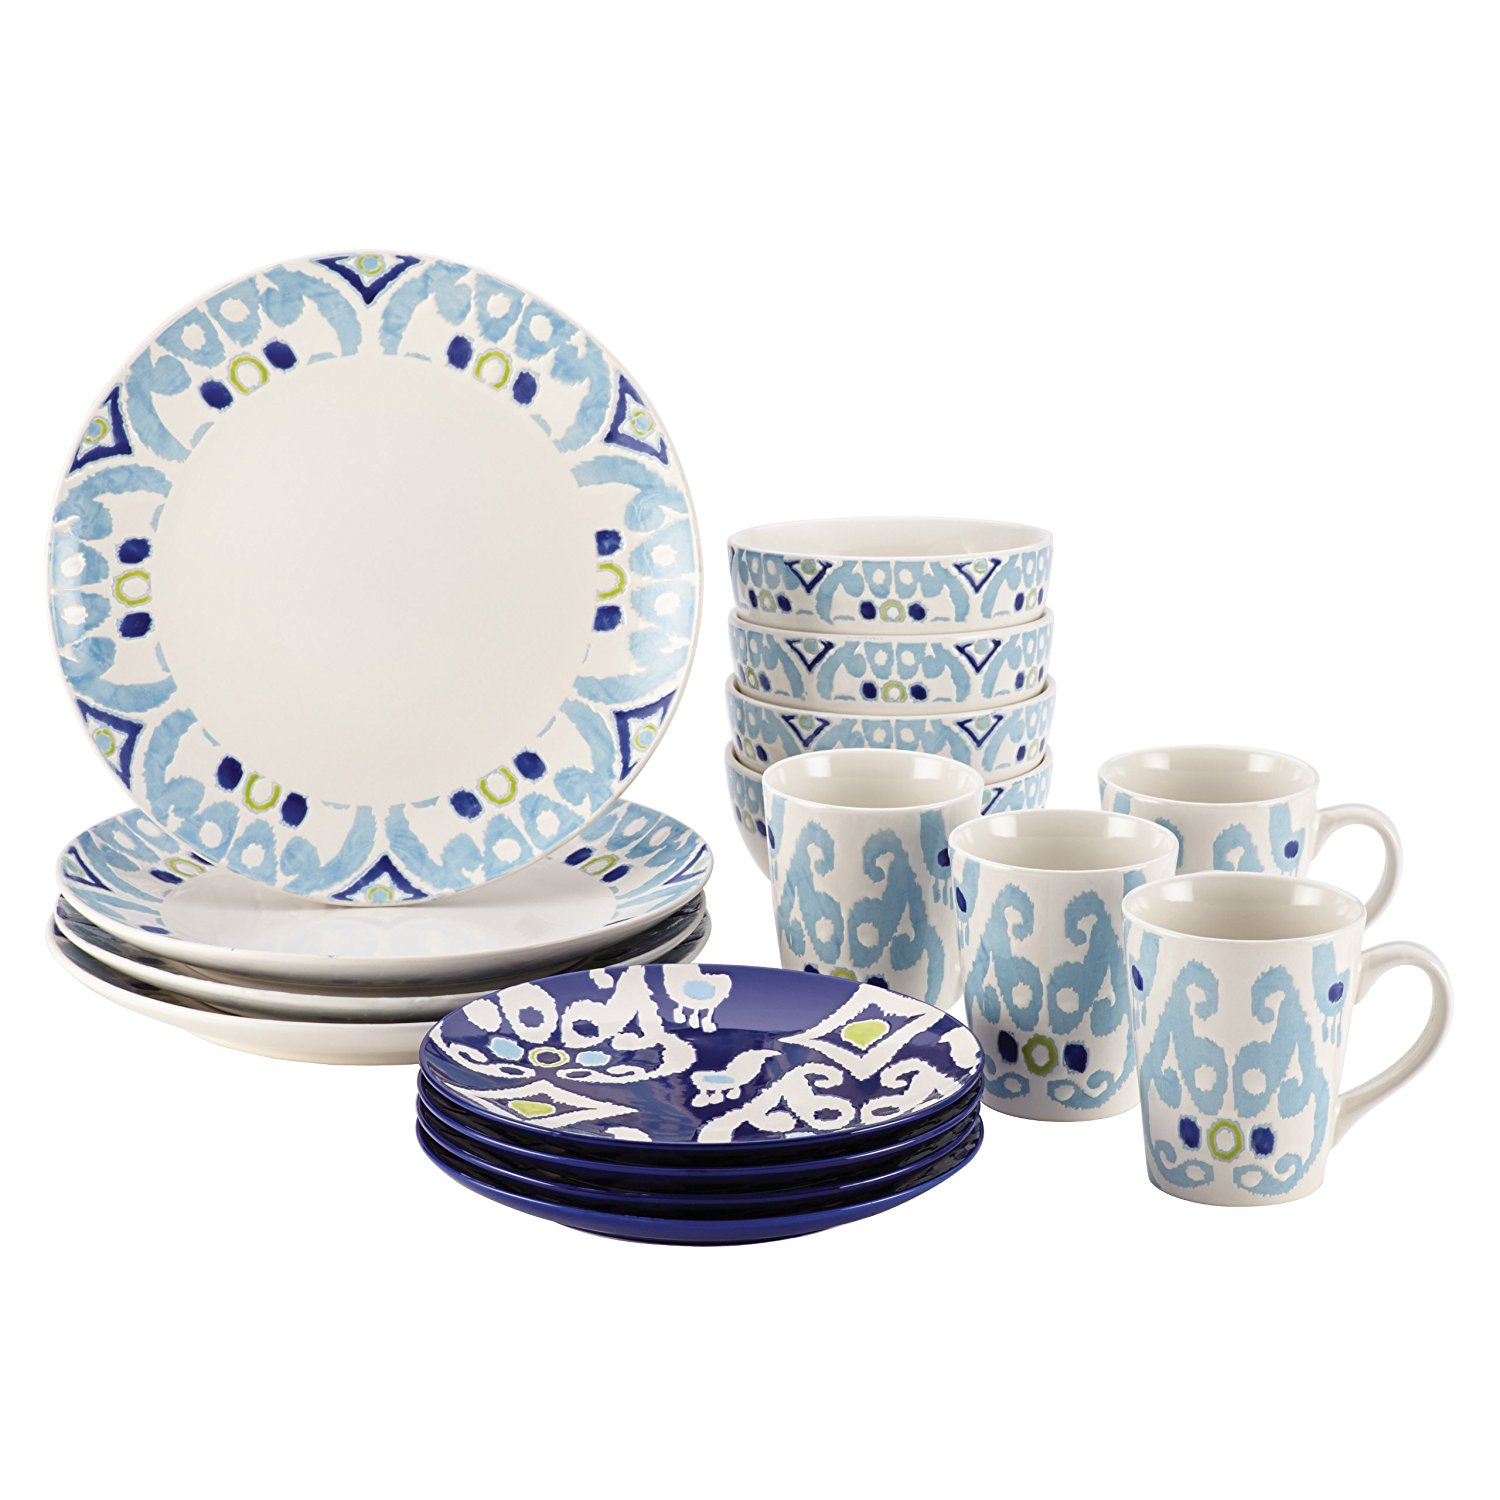 Mainstay Dishes | Stoneware Dinnerware Sets | Pfaltzgraff Stoneware